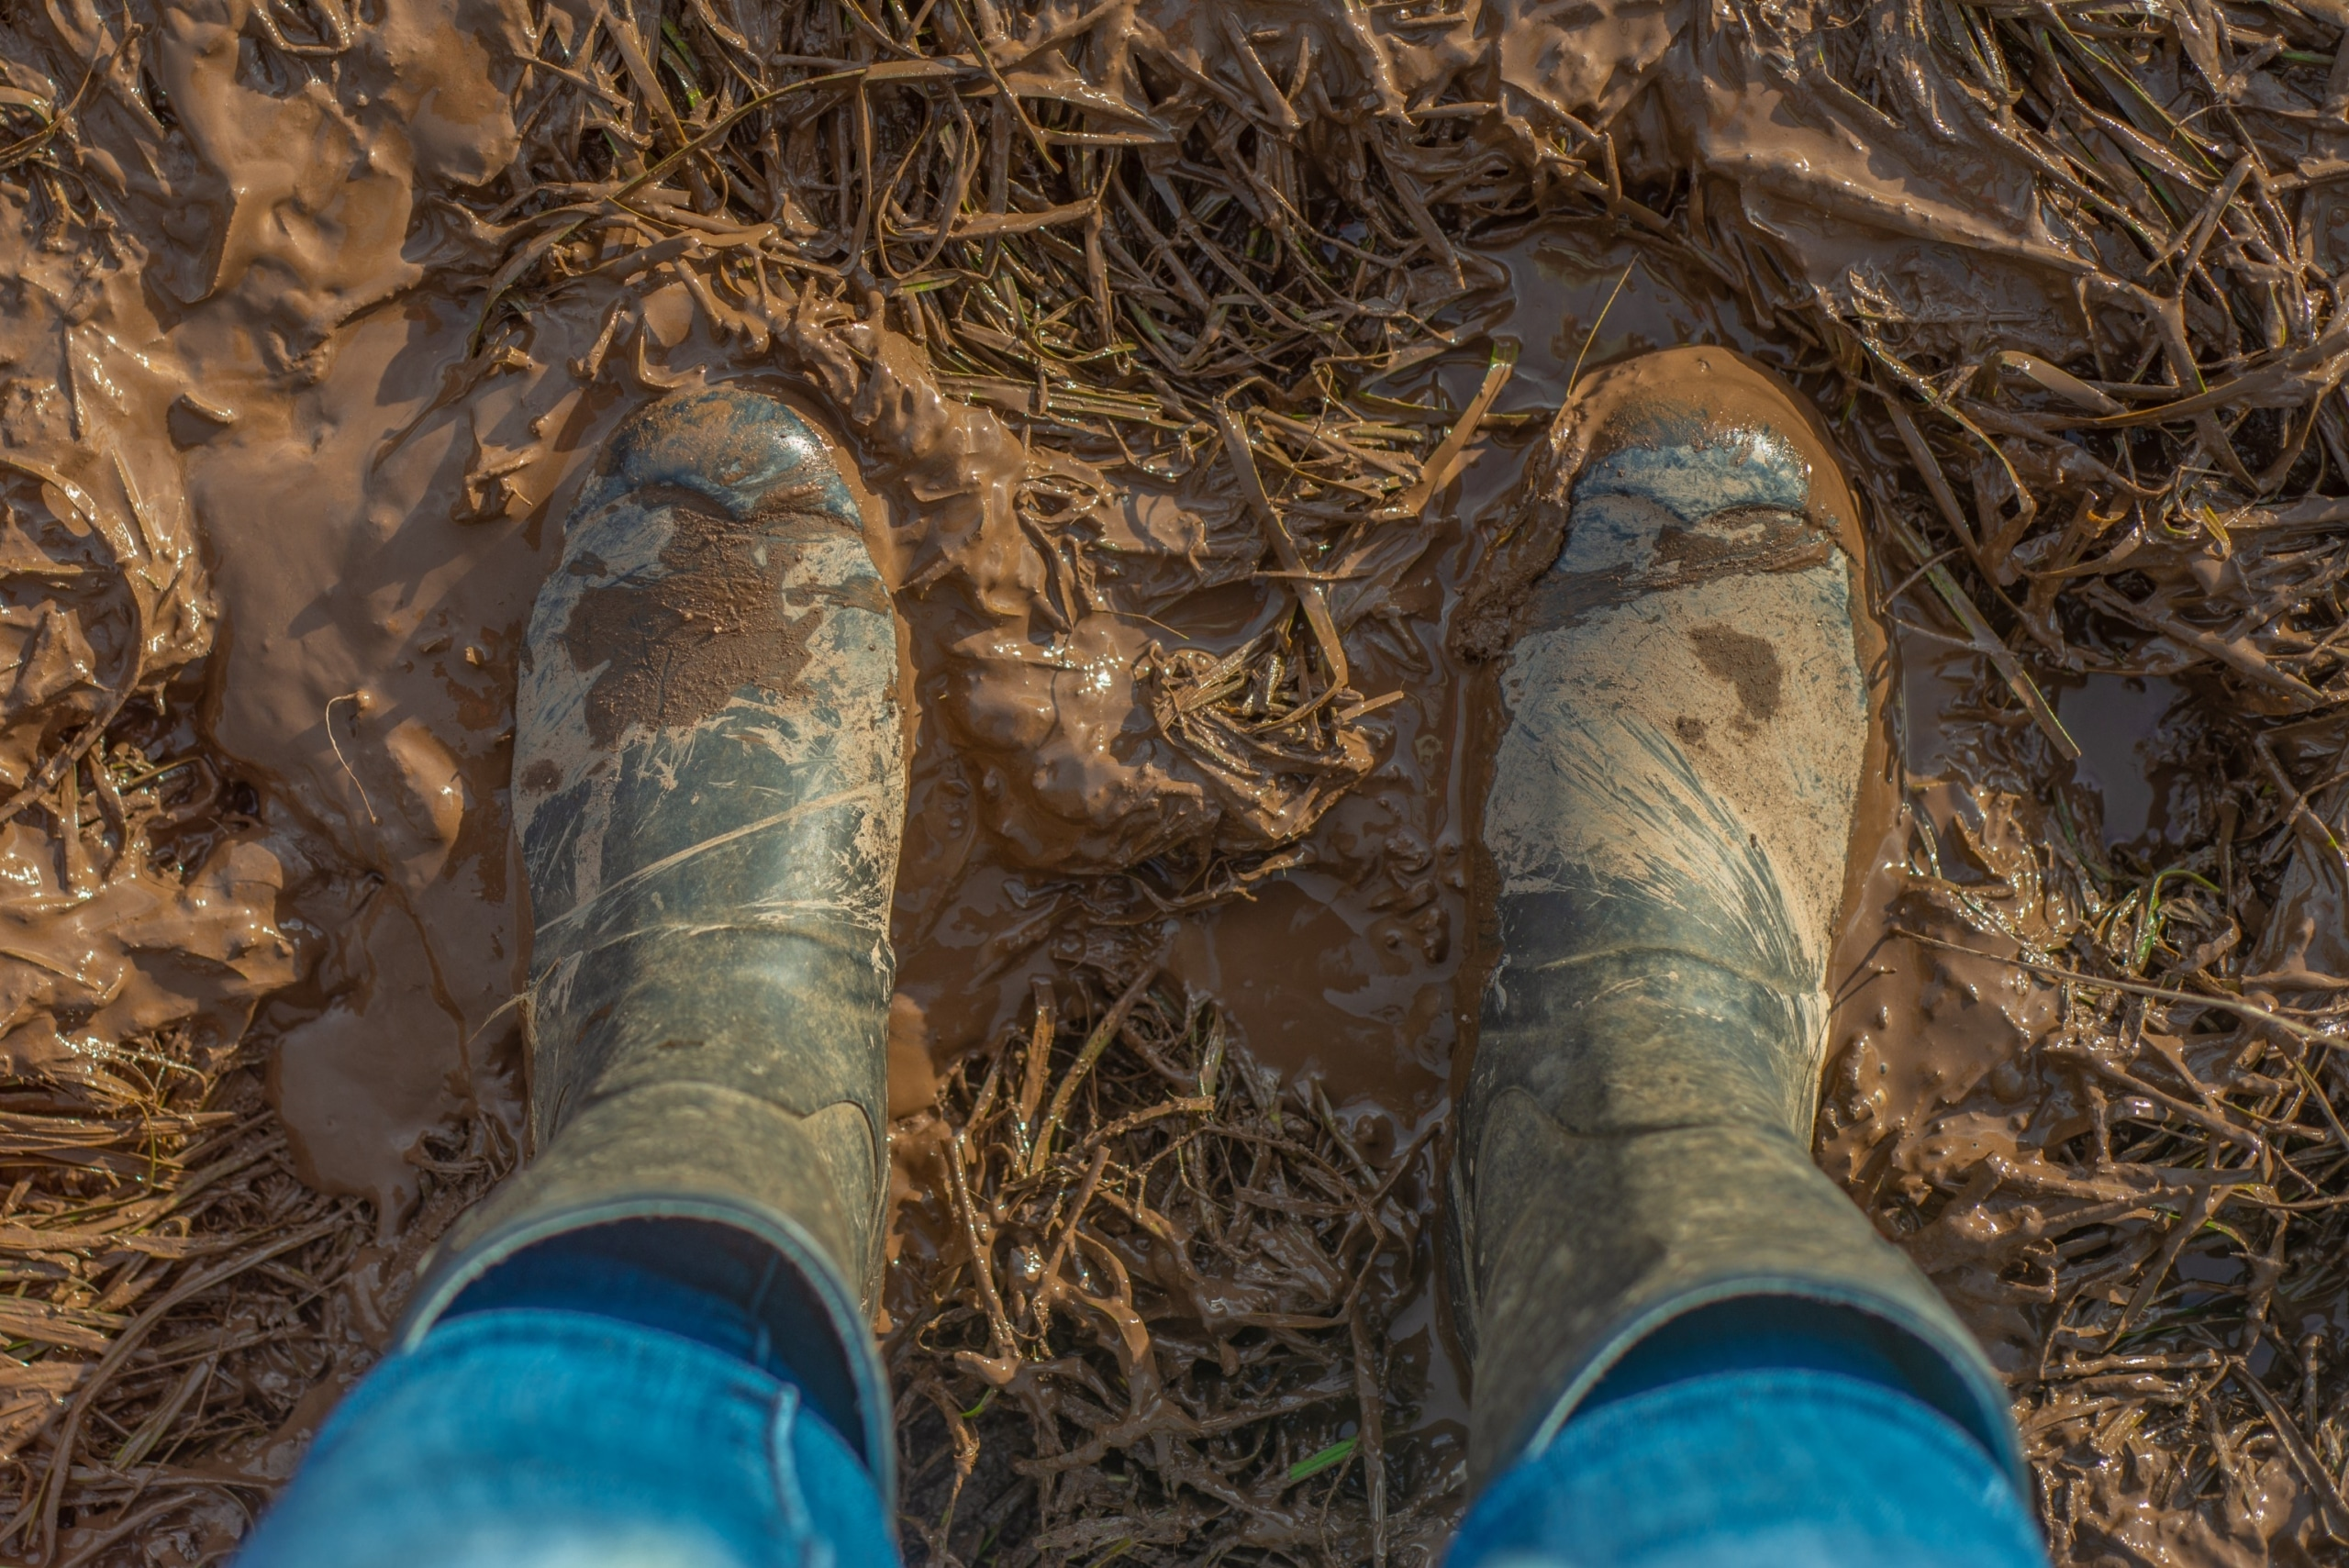 Wellington boots covered in mud